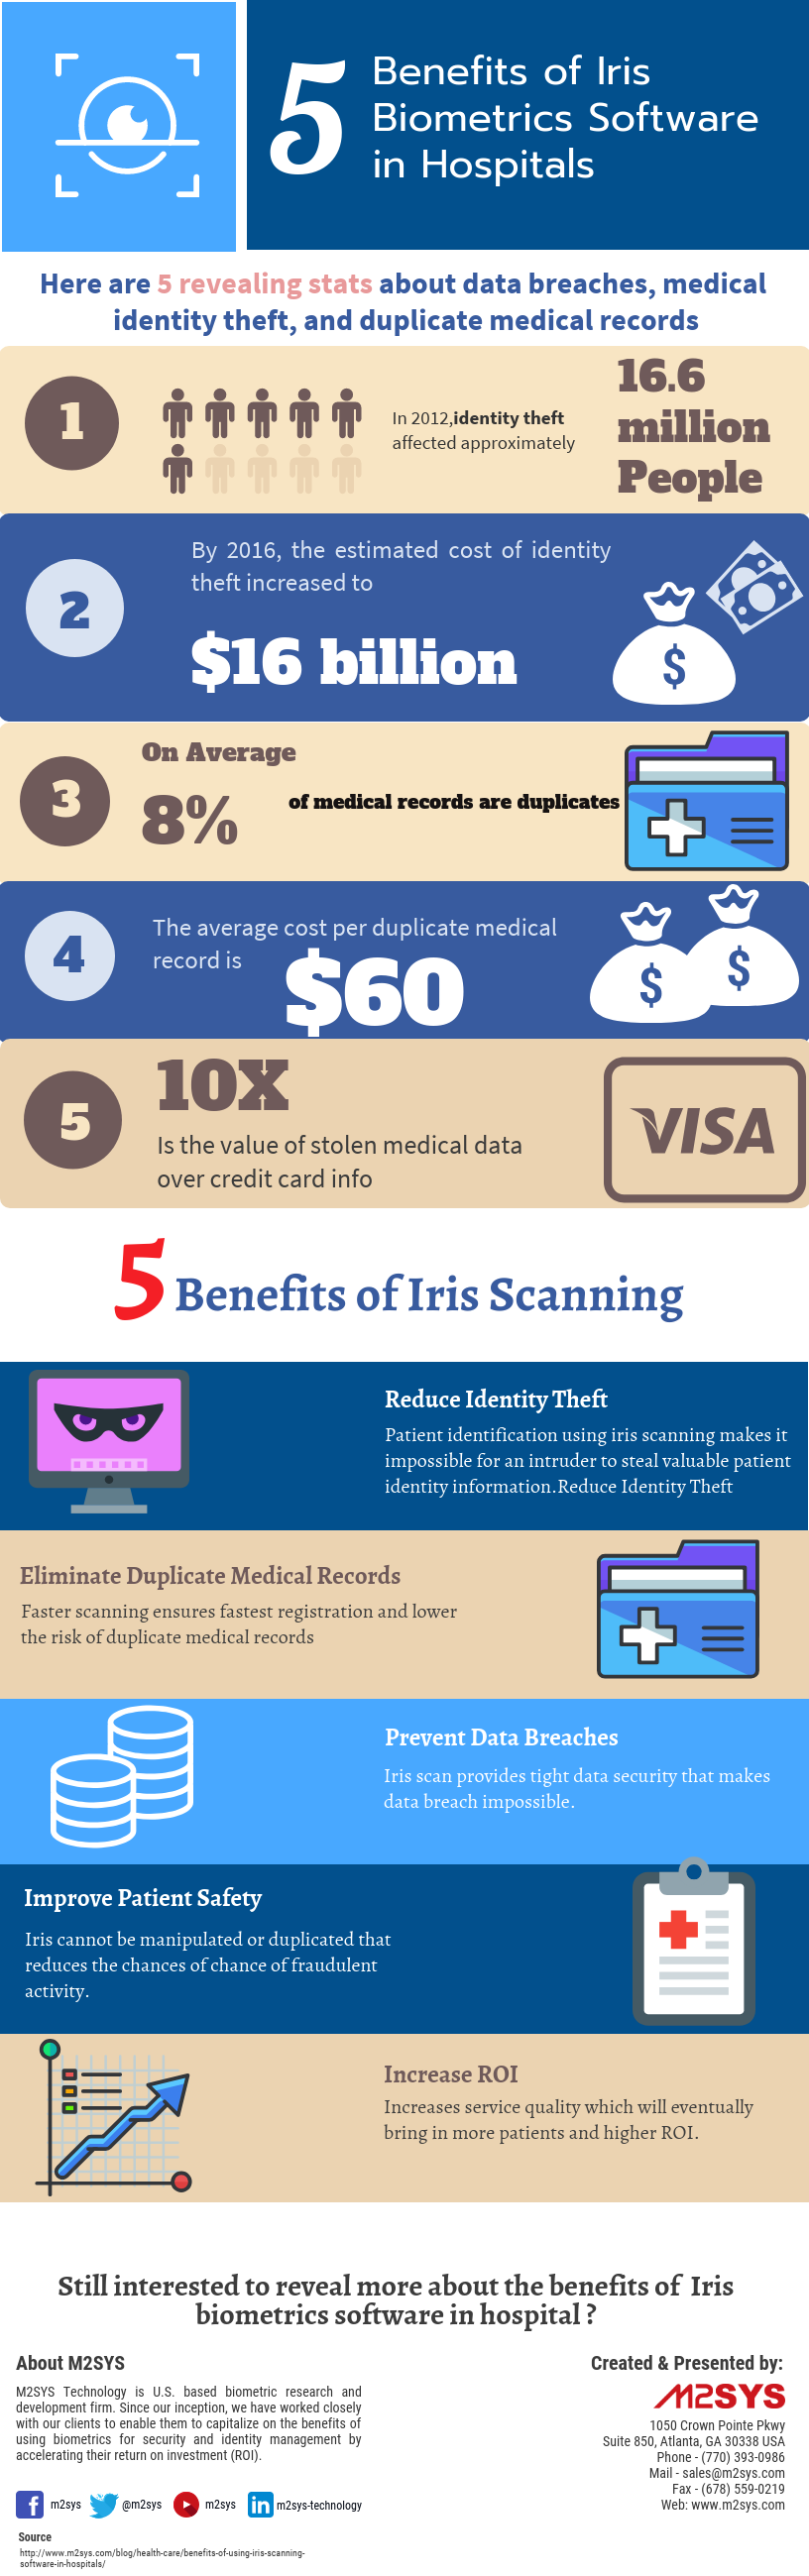 5 Benefits of Iris Biometrics Software in Hospitals